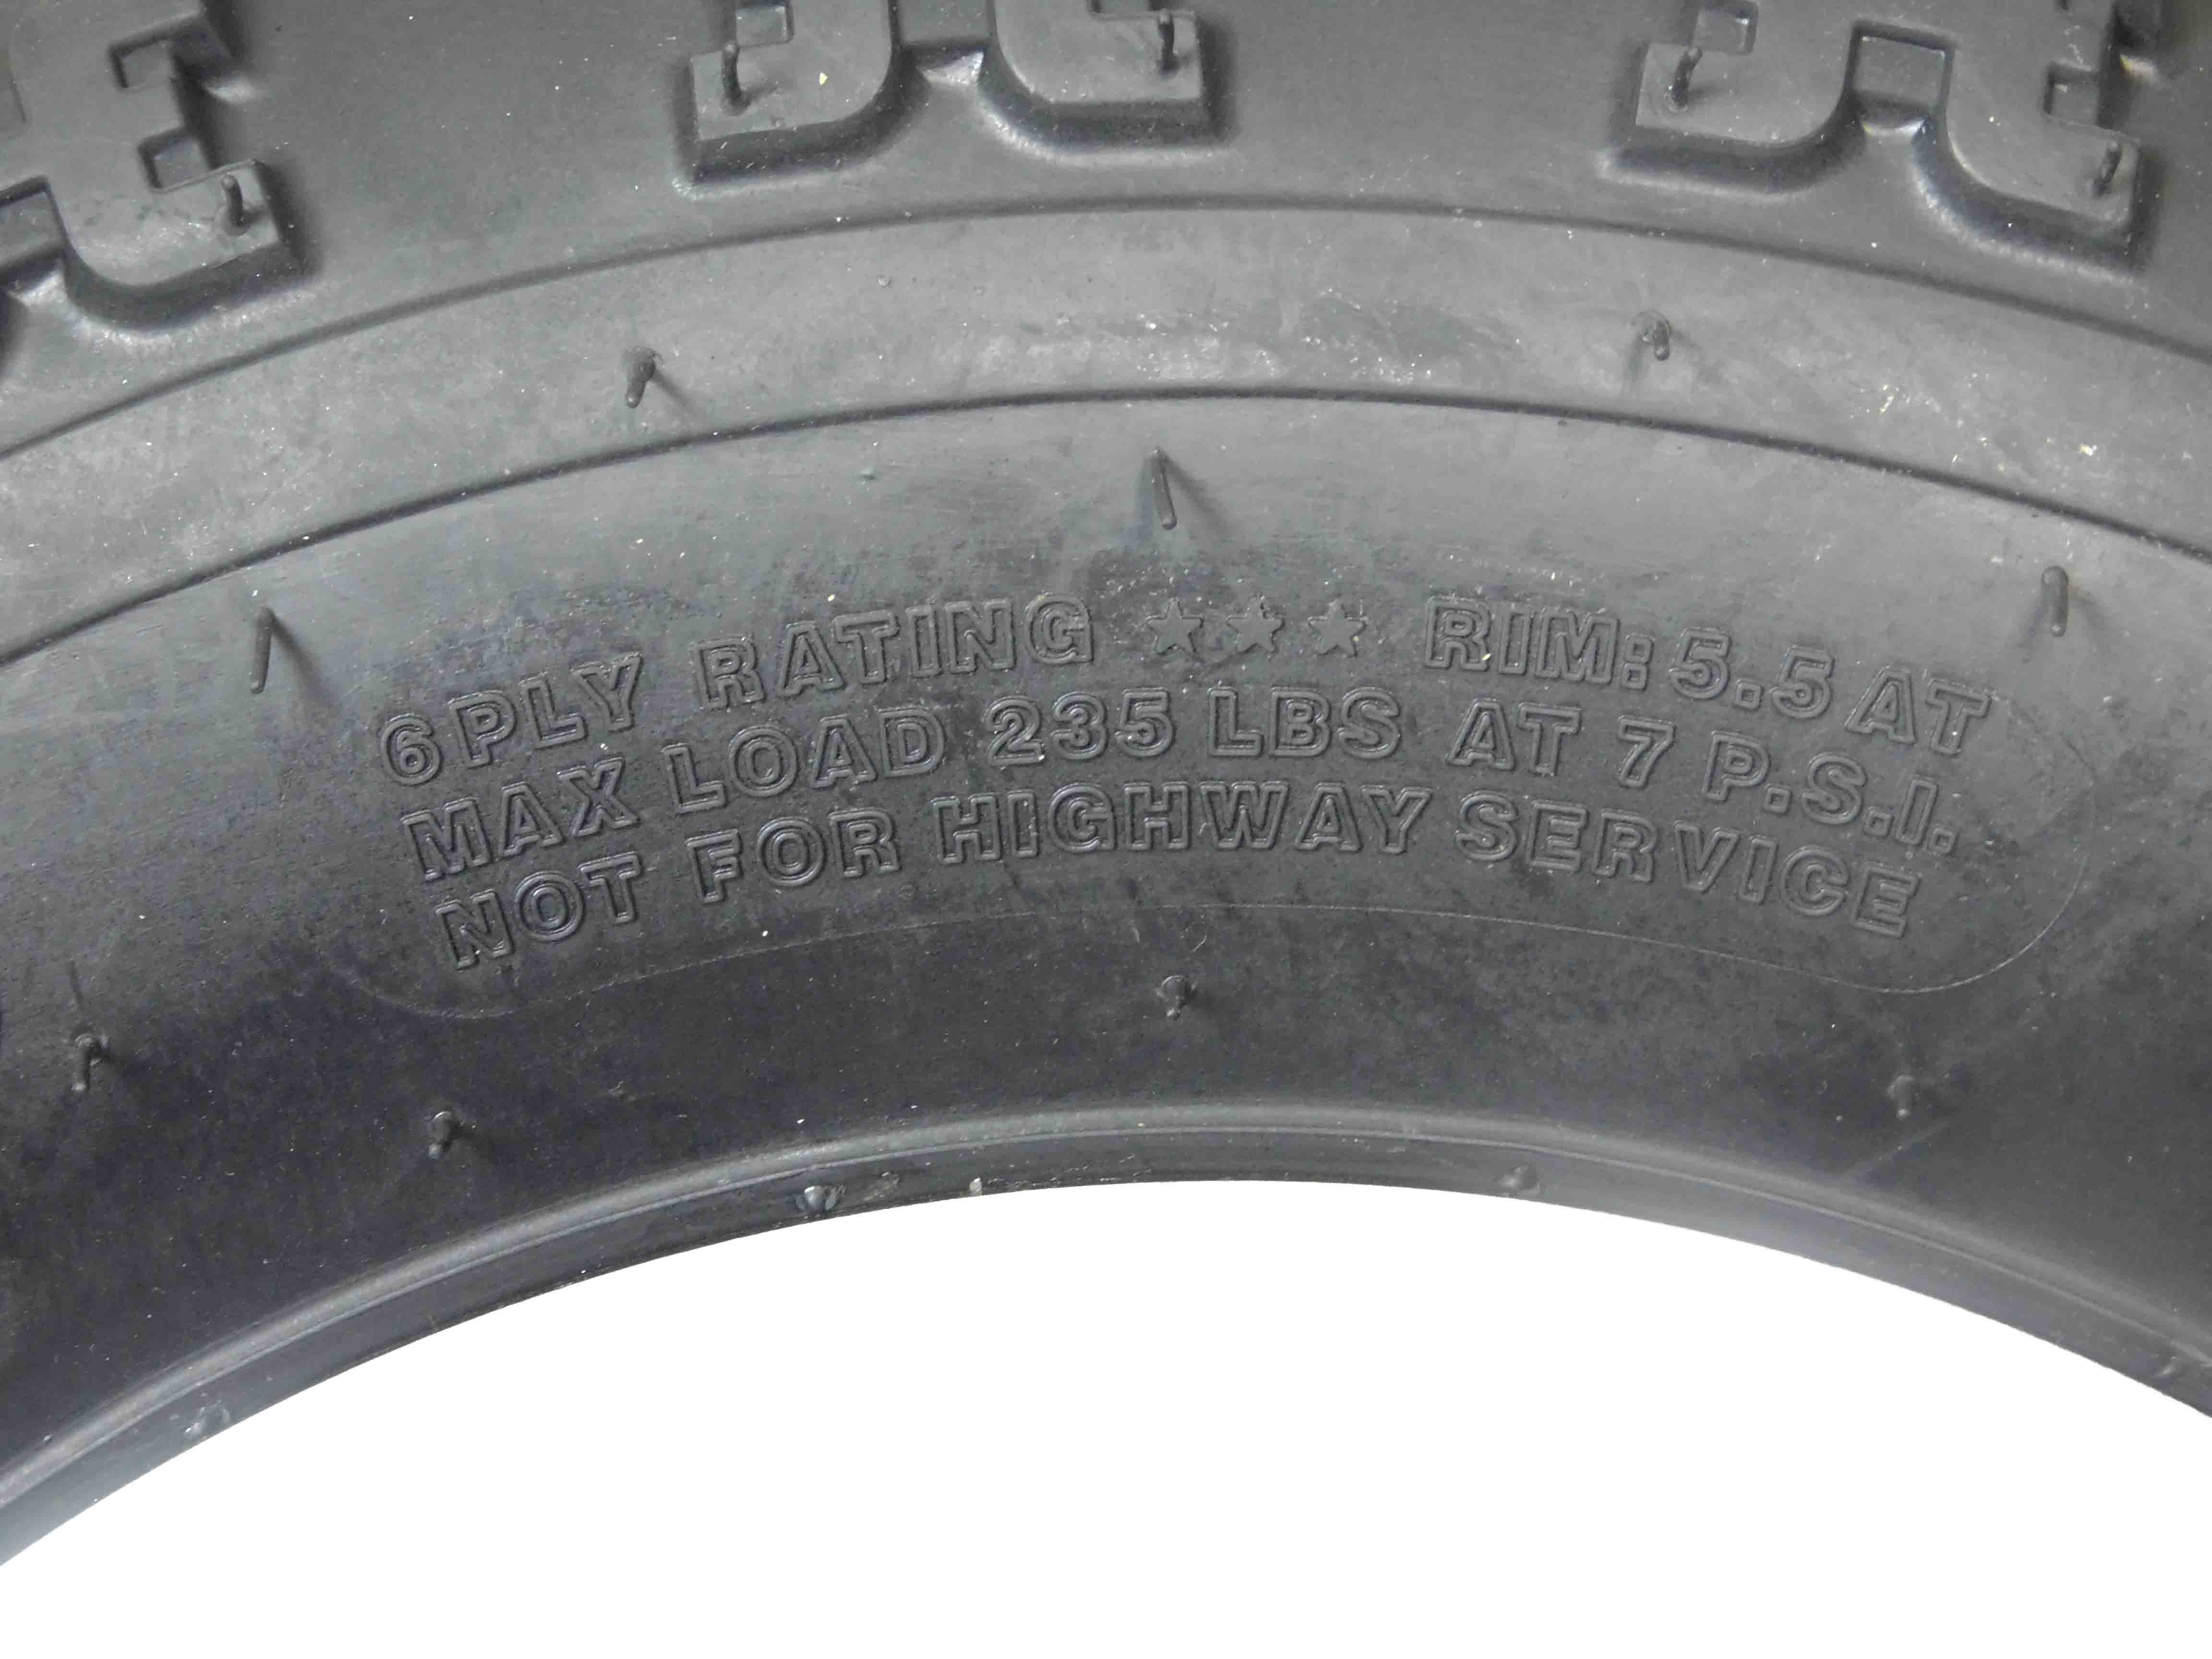 MASSFX-21X7-10-ATV-Tire-Highly-Durable-6-ply-Dual-Compound-21x7x10-image-4